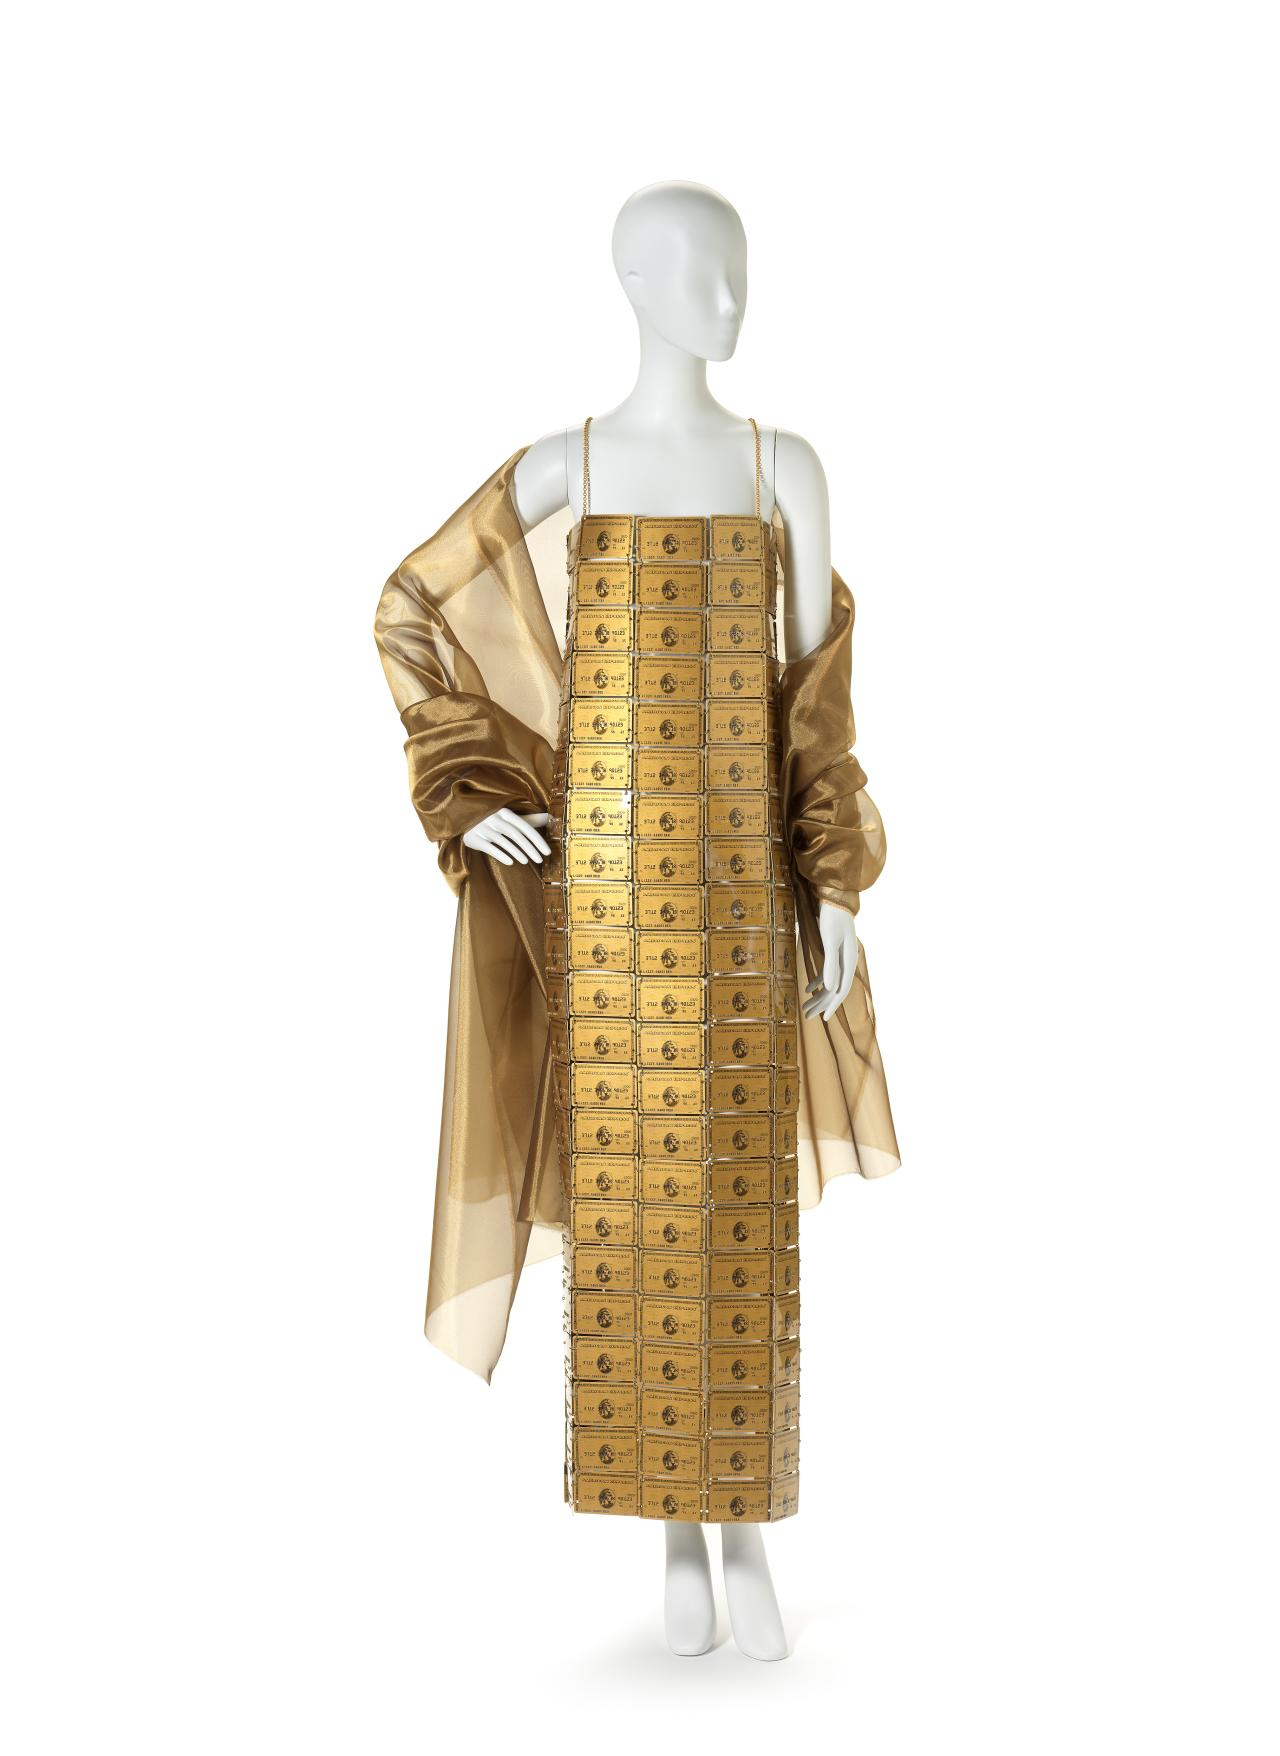 The American Express ® gold card dress